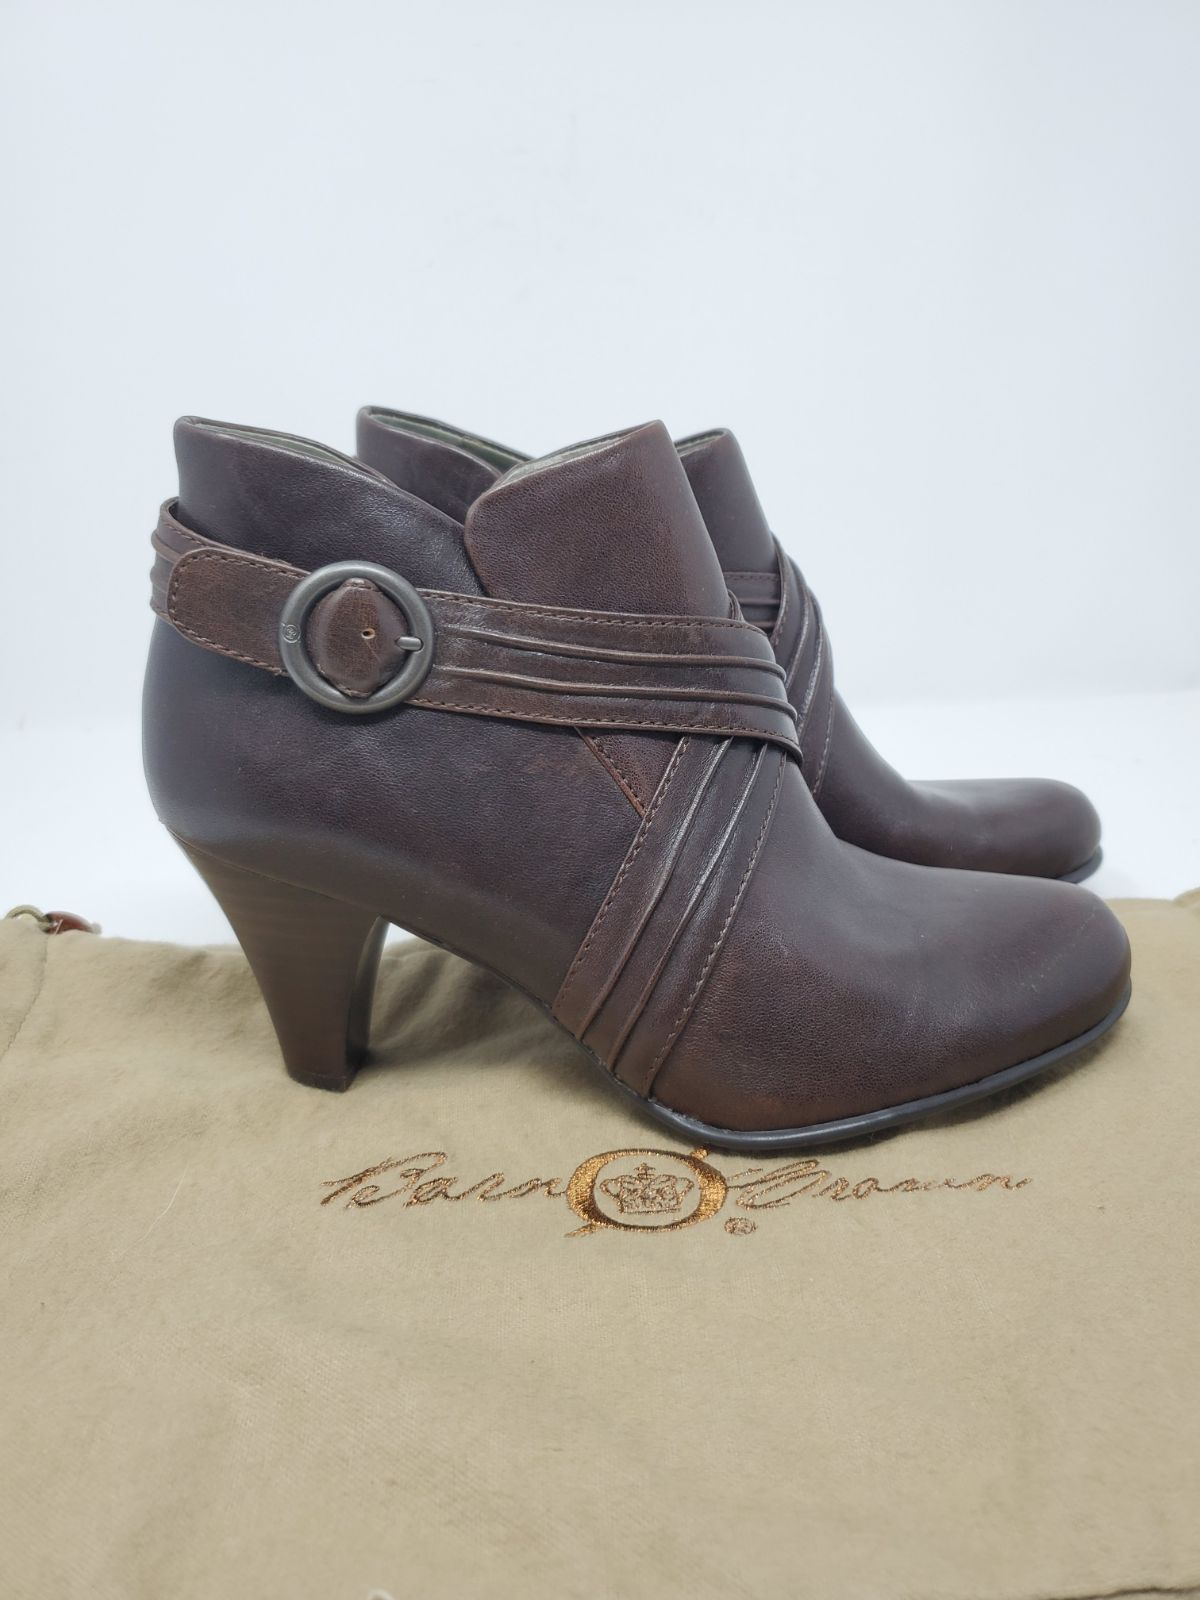 NEW $150 BORN BOOTIE CHOCOLATE BROWN